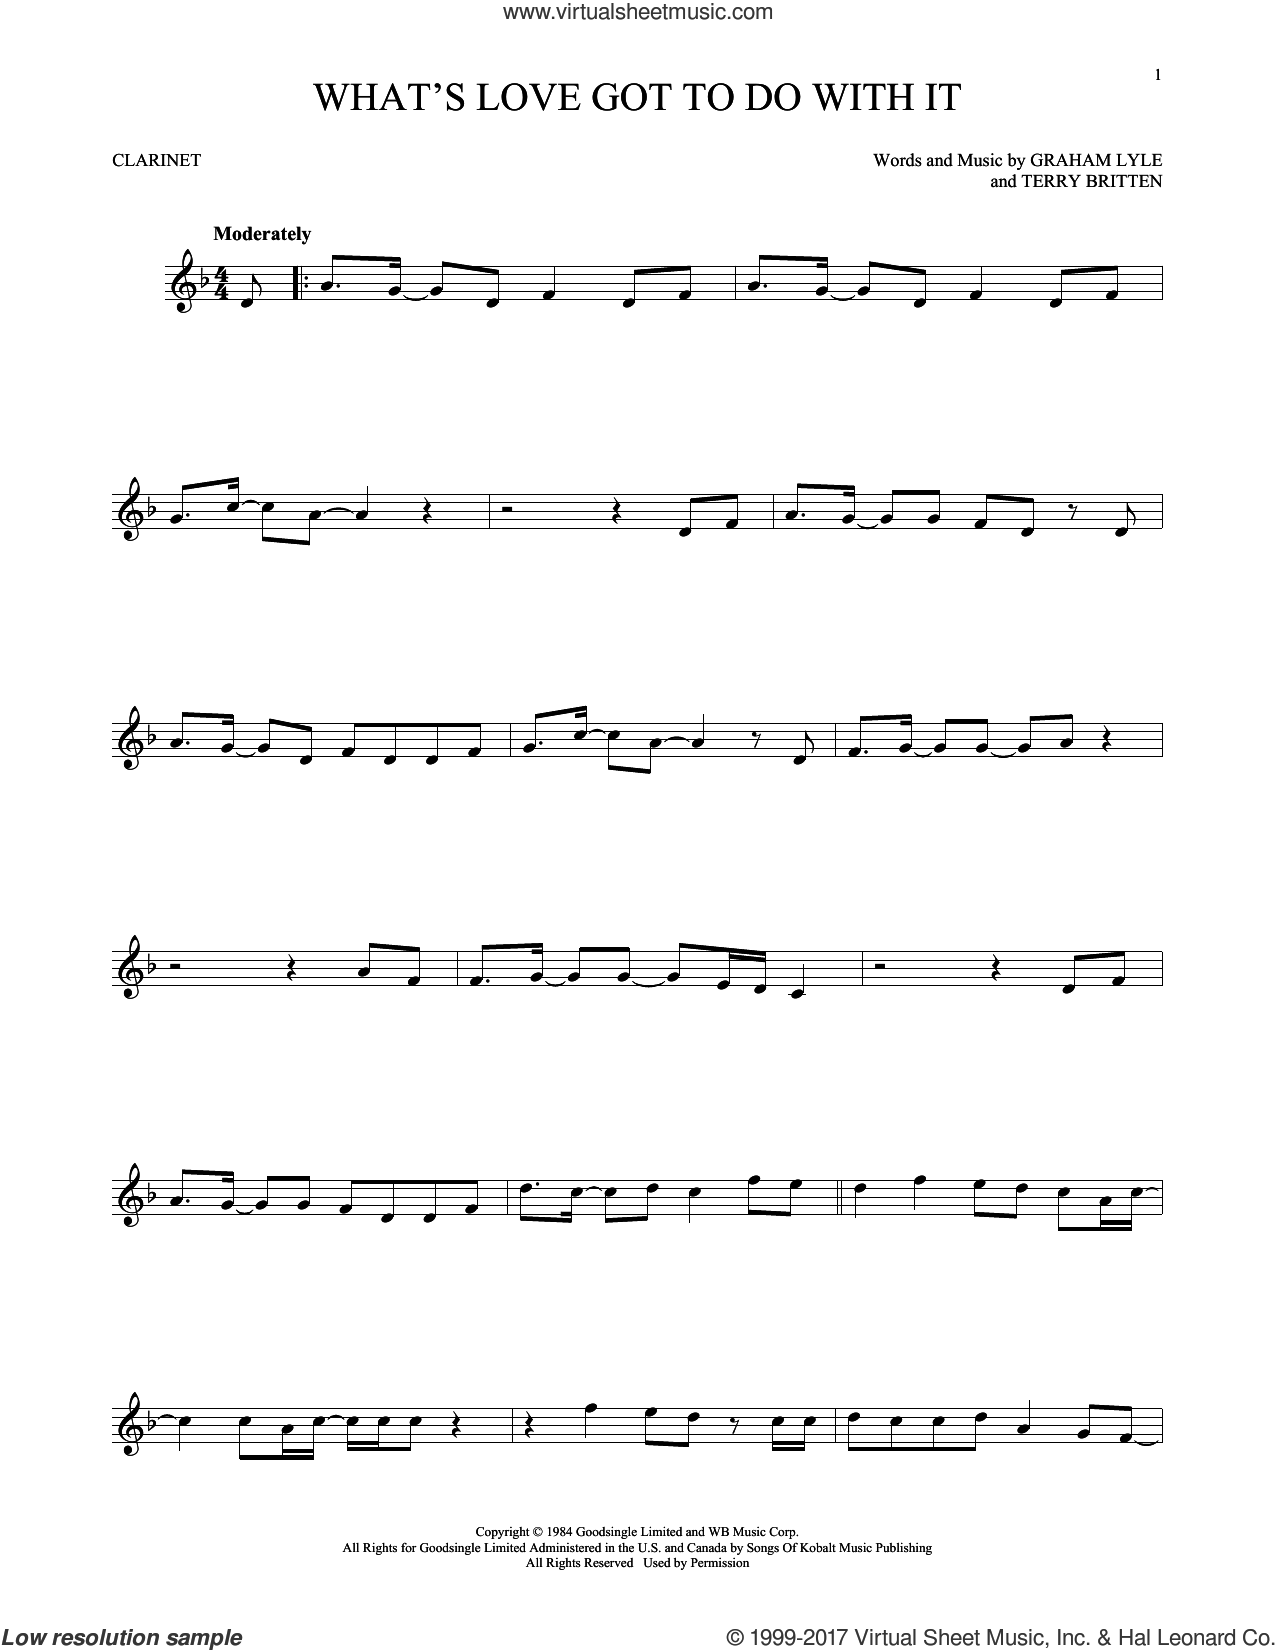 What's Love Got To Do With It sheet music for clarinet solo by Tina Turner, Graham Lyle and Terry Britten, intermediate skill level